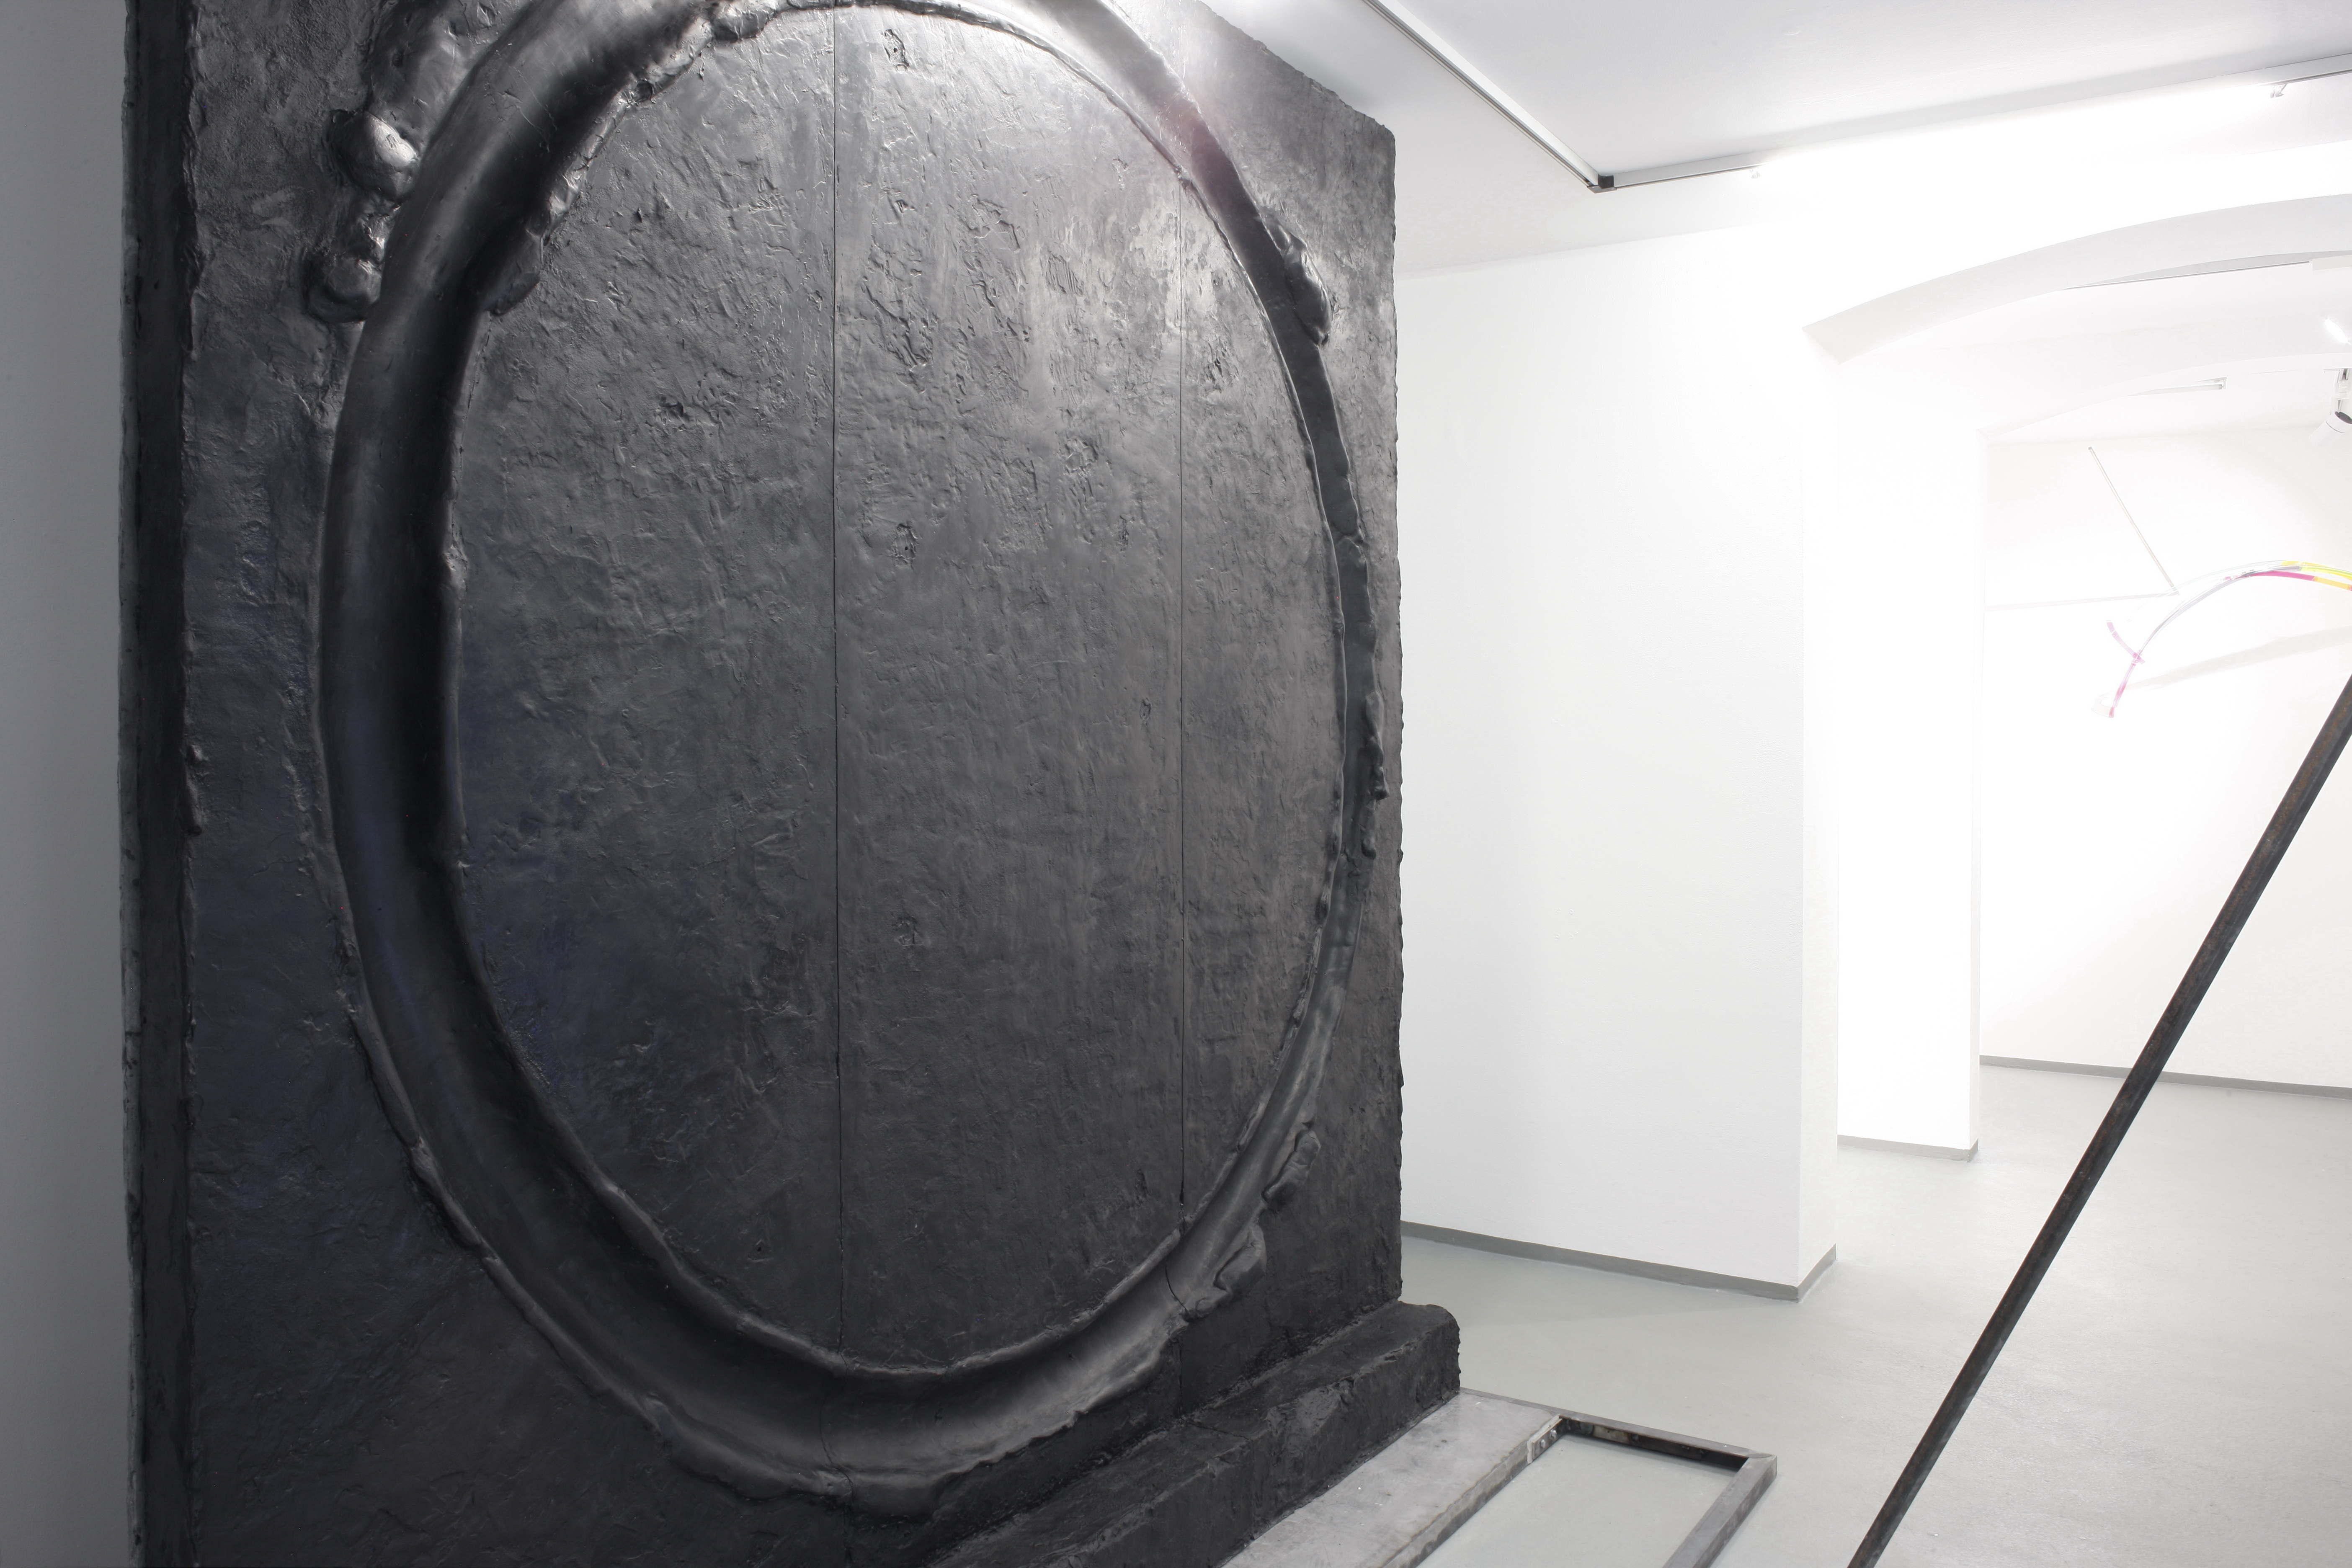 Installation View - God's Biometric Data, 2019 - Exhibition by Erik Andersen and Amit Goffer at Diskurs Berlin - Black sculpture by Erik Andersen